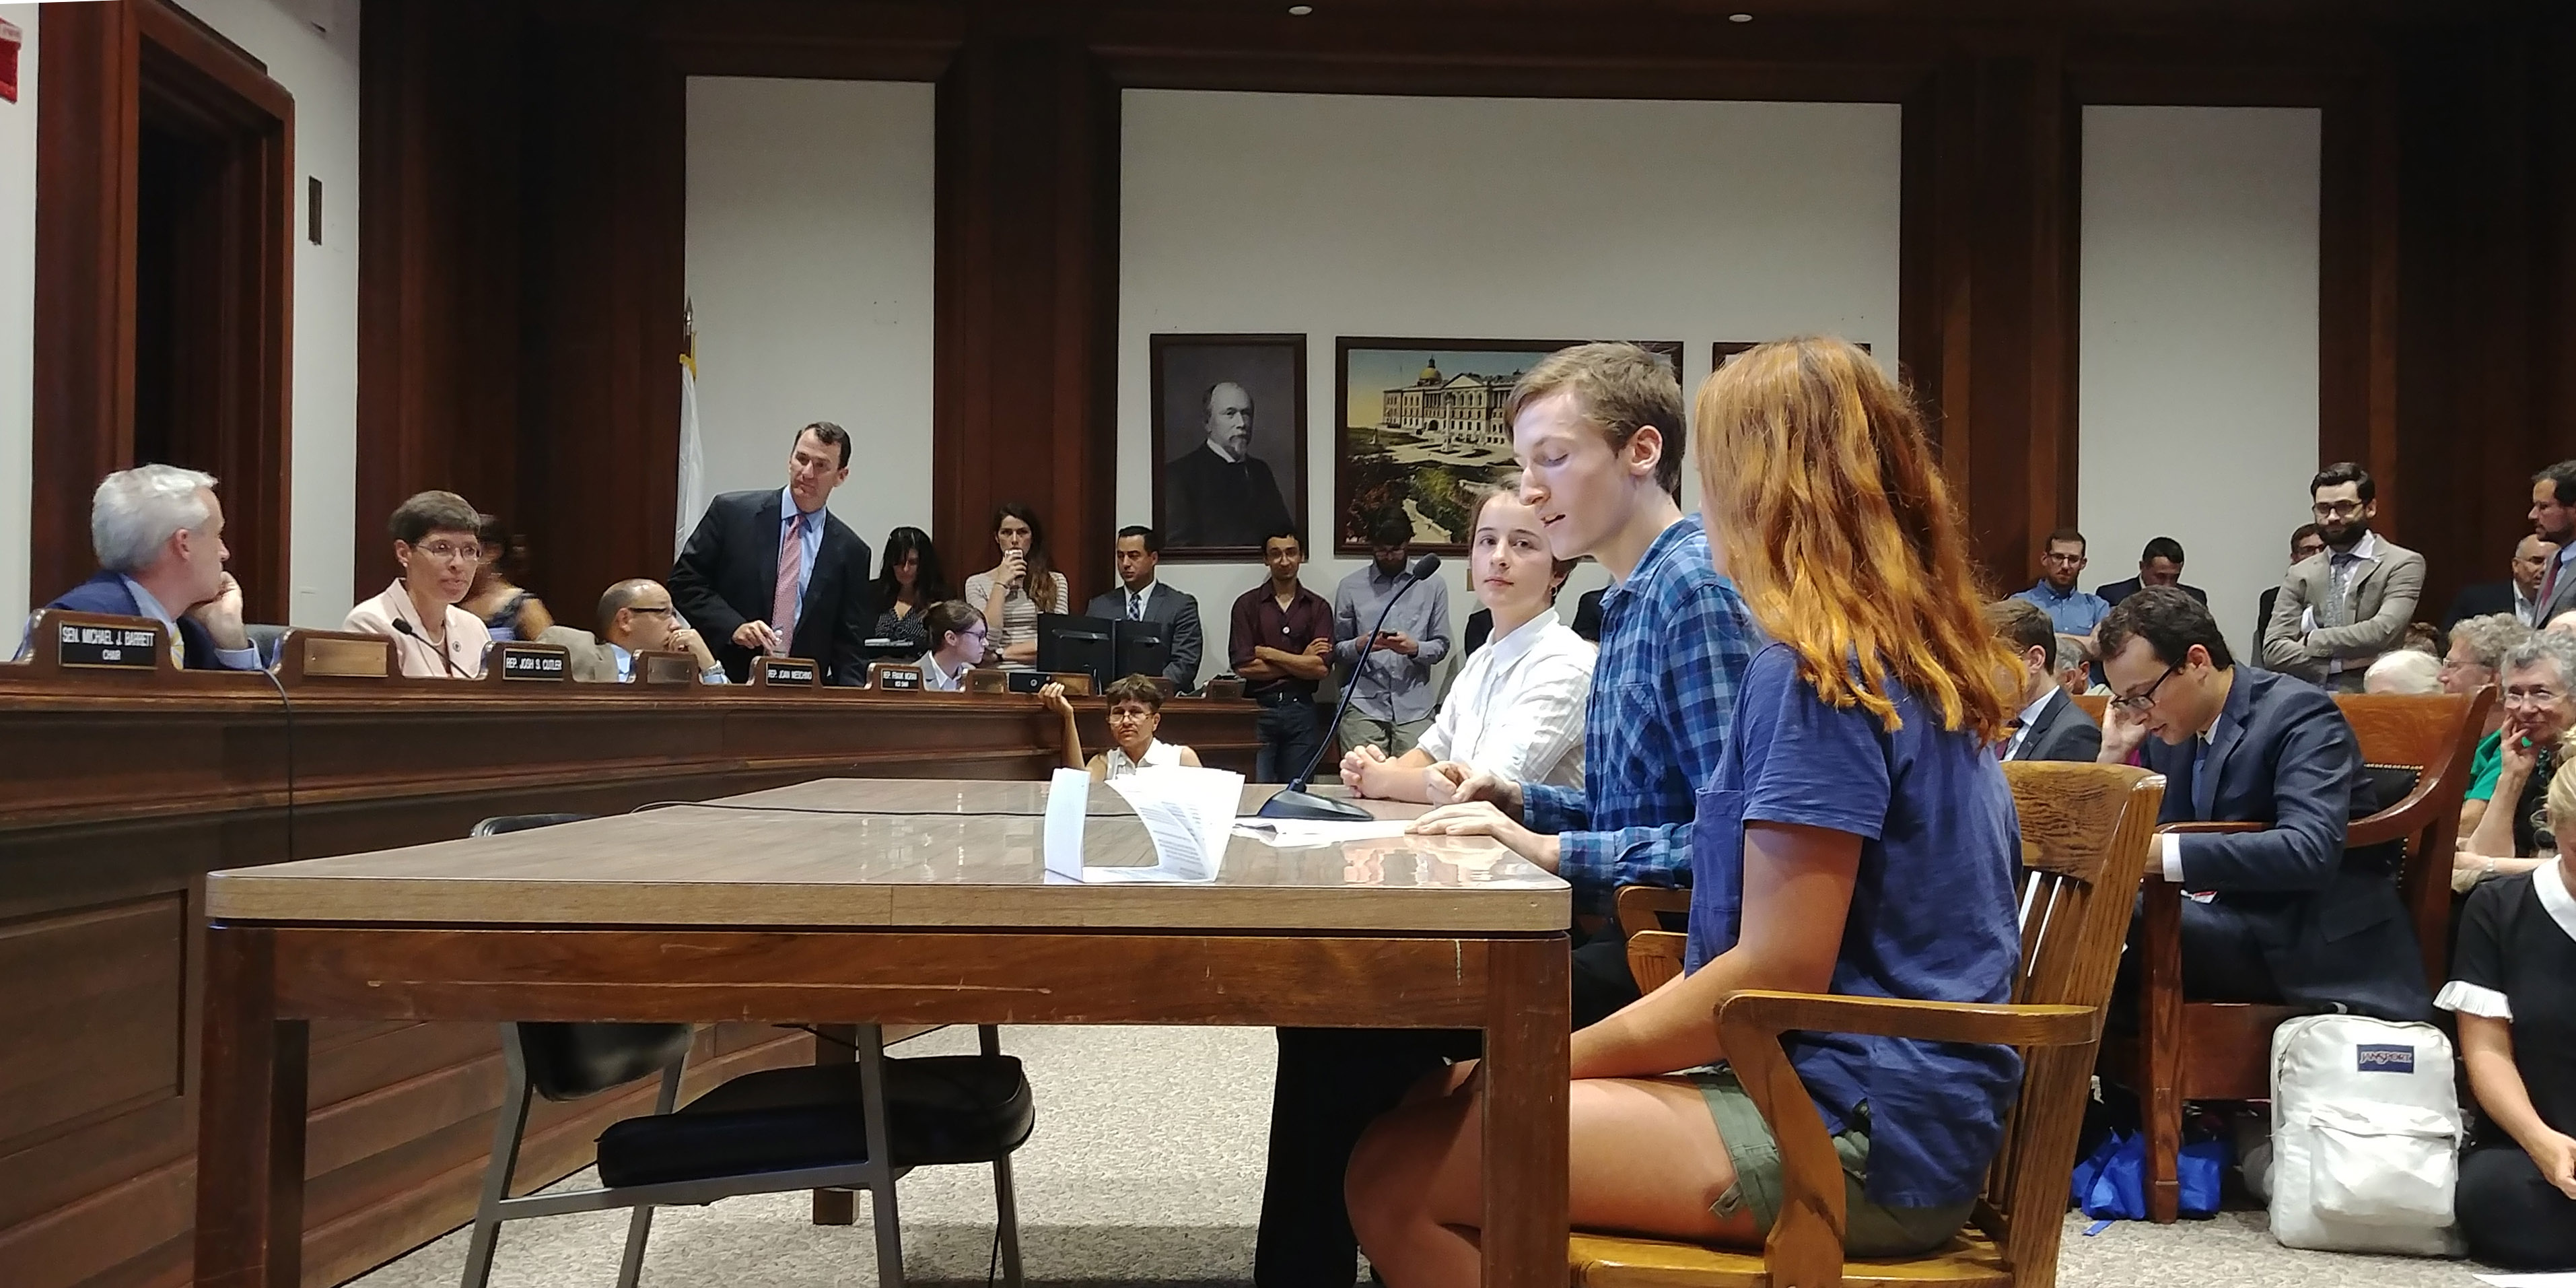 Max Shannon, flanked by Aislyn Jewett and Madeleine Lombard, speaking while seated at a table in front of lawmakers